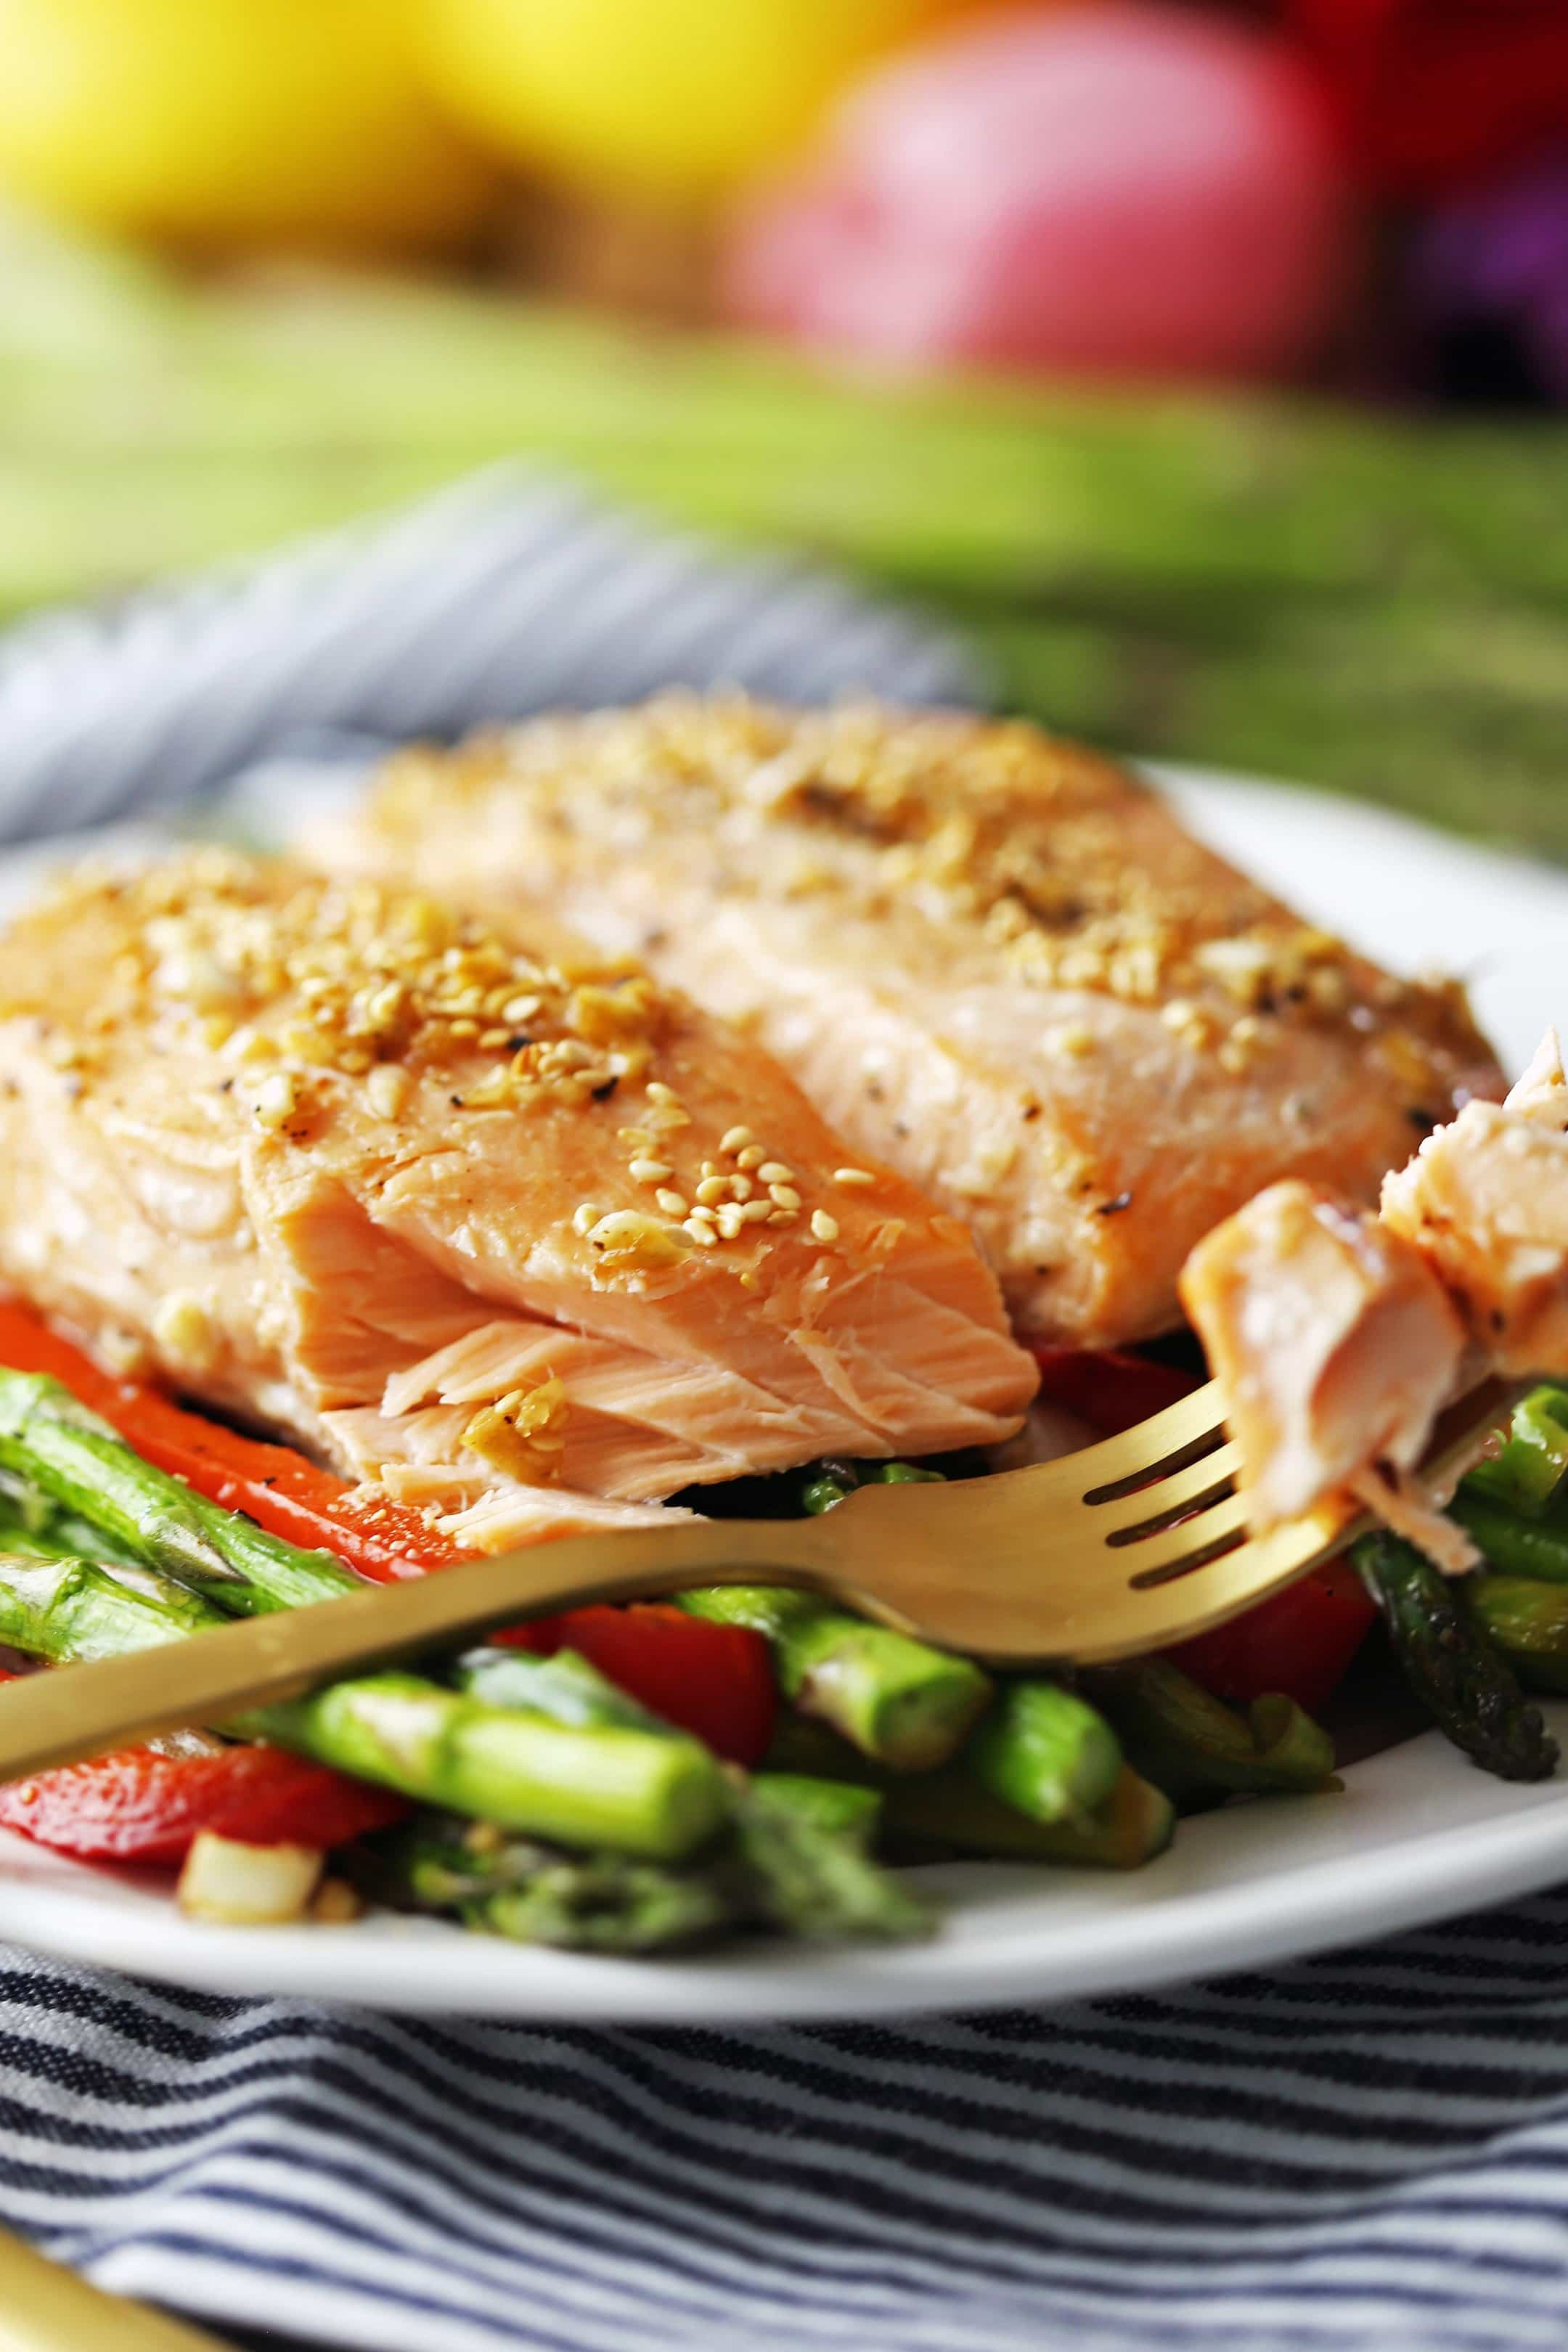 A flaky piece of baked salmon on the tines of a gold fork that's placed on a white plate with two salmon fillets, asparagus, and bell peppers.